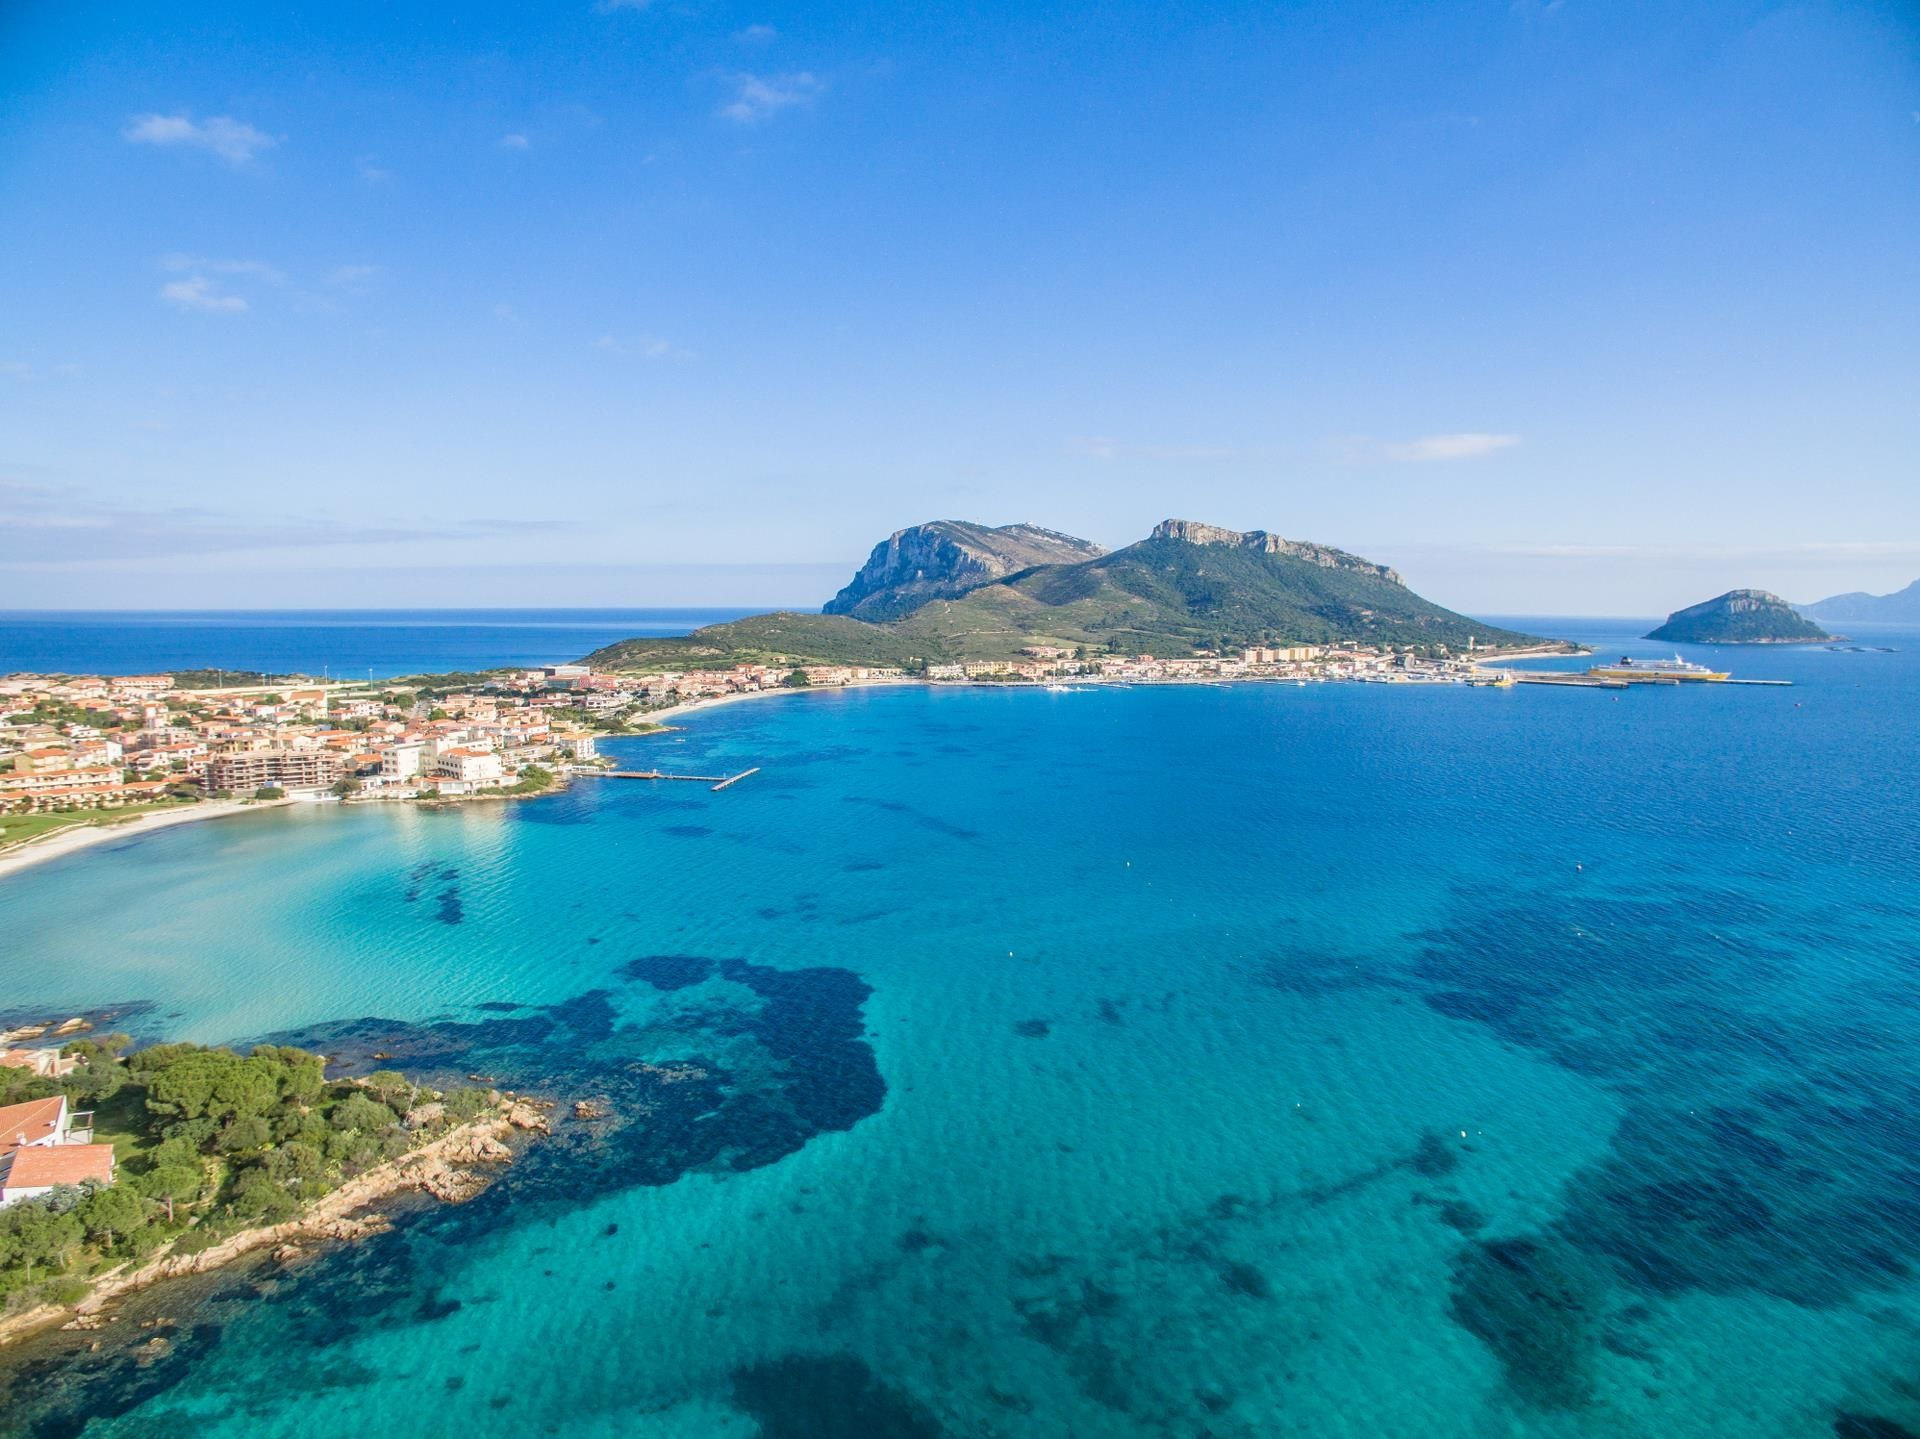 Golfo aranci sardinia properties for sale or rent for Golfo aranci sardegna